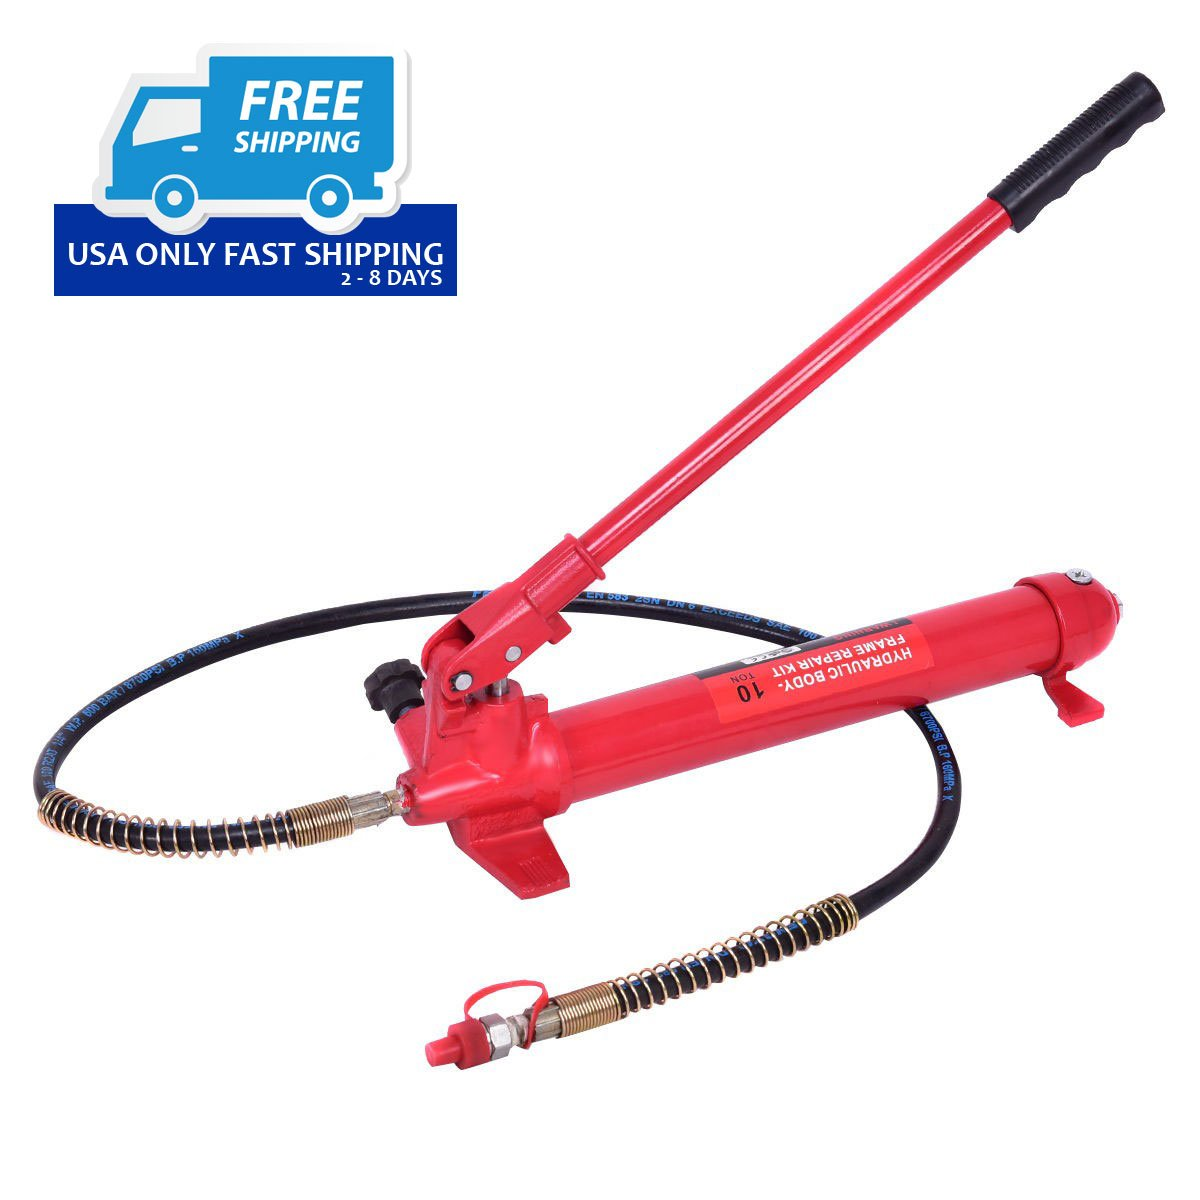 10 Ton Porta Power Hydraulic Jack Body Frame Repair Kit Auto Shop ...